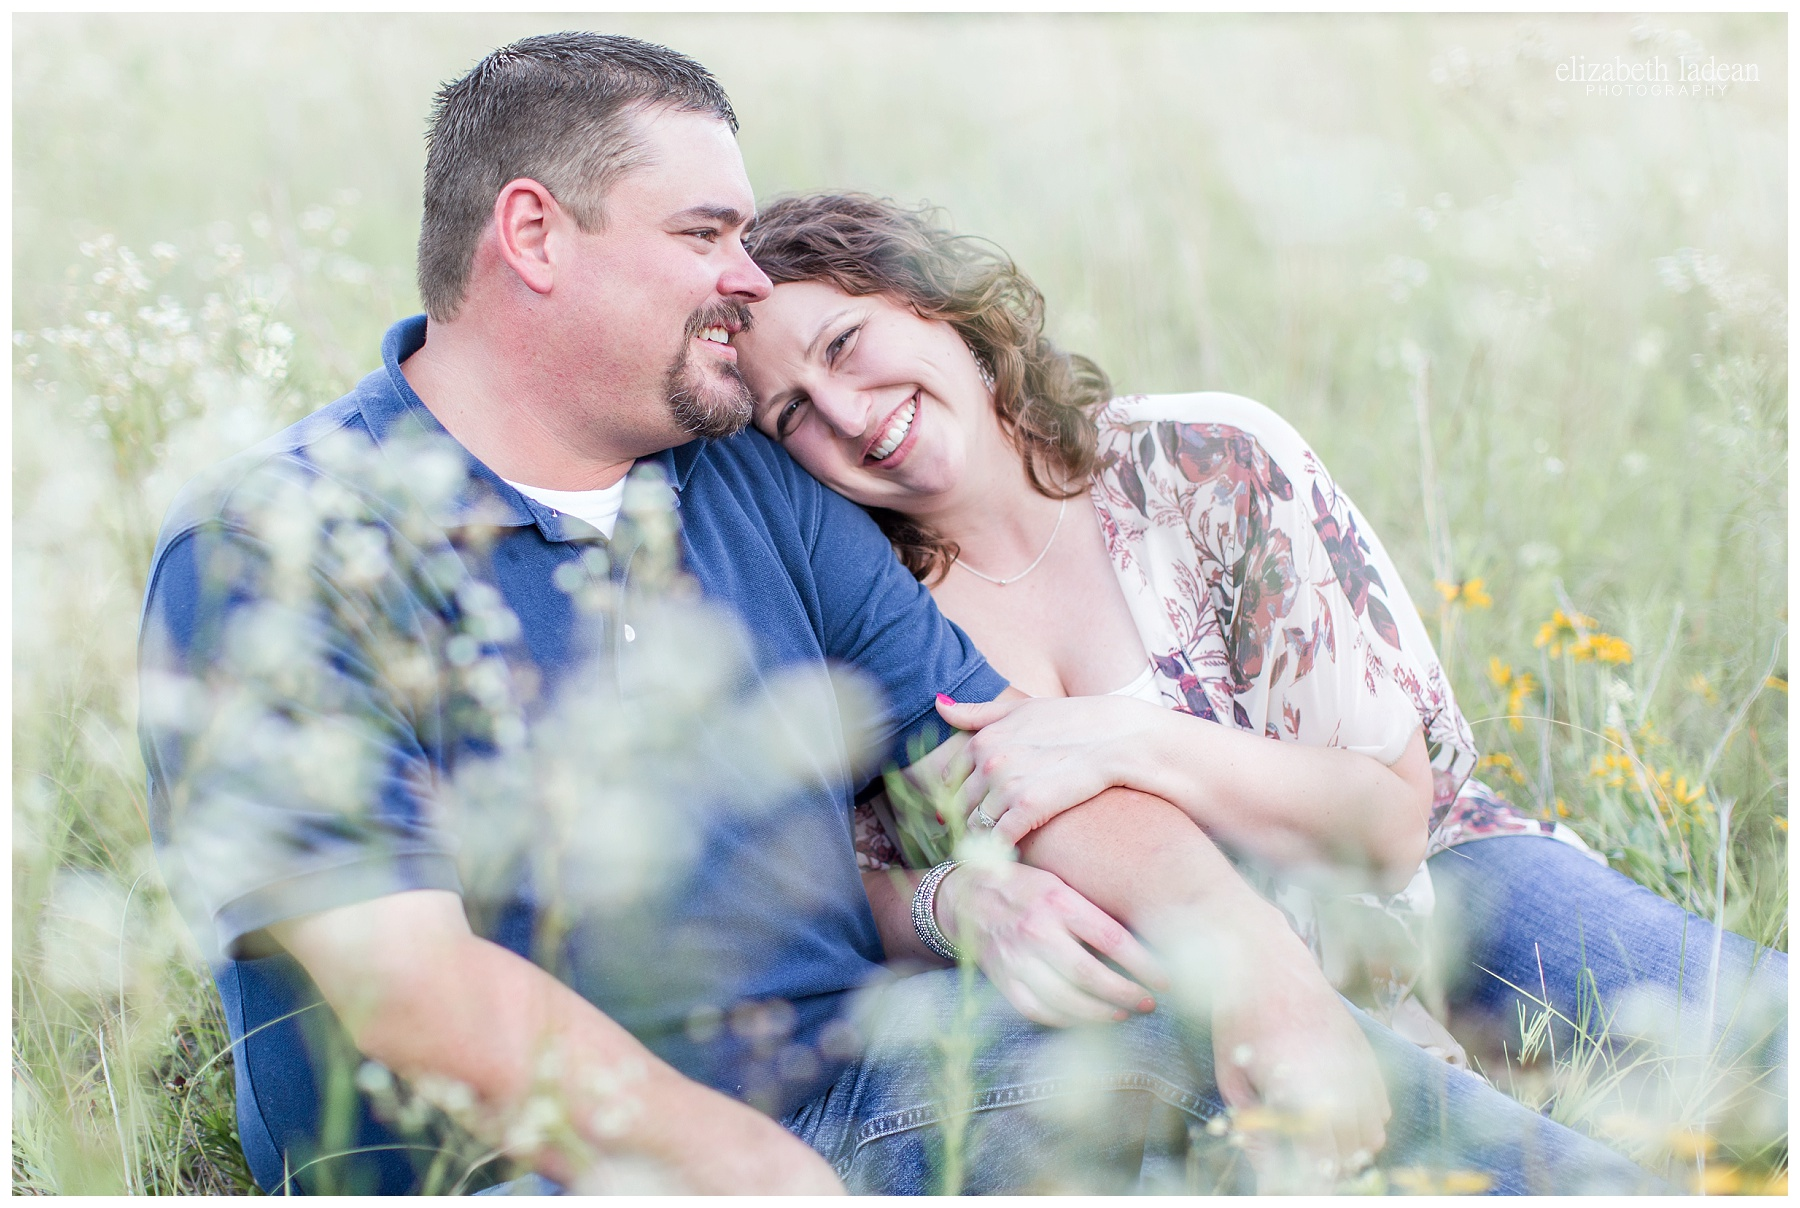 Kansas-City-Engagement-Photography-Shawnee-Mission-H+JJ2017-Elizabeth-Ladean-Photography-photo_1920.jpg